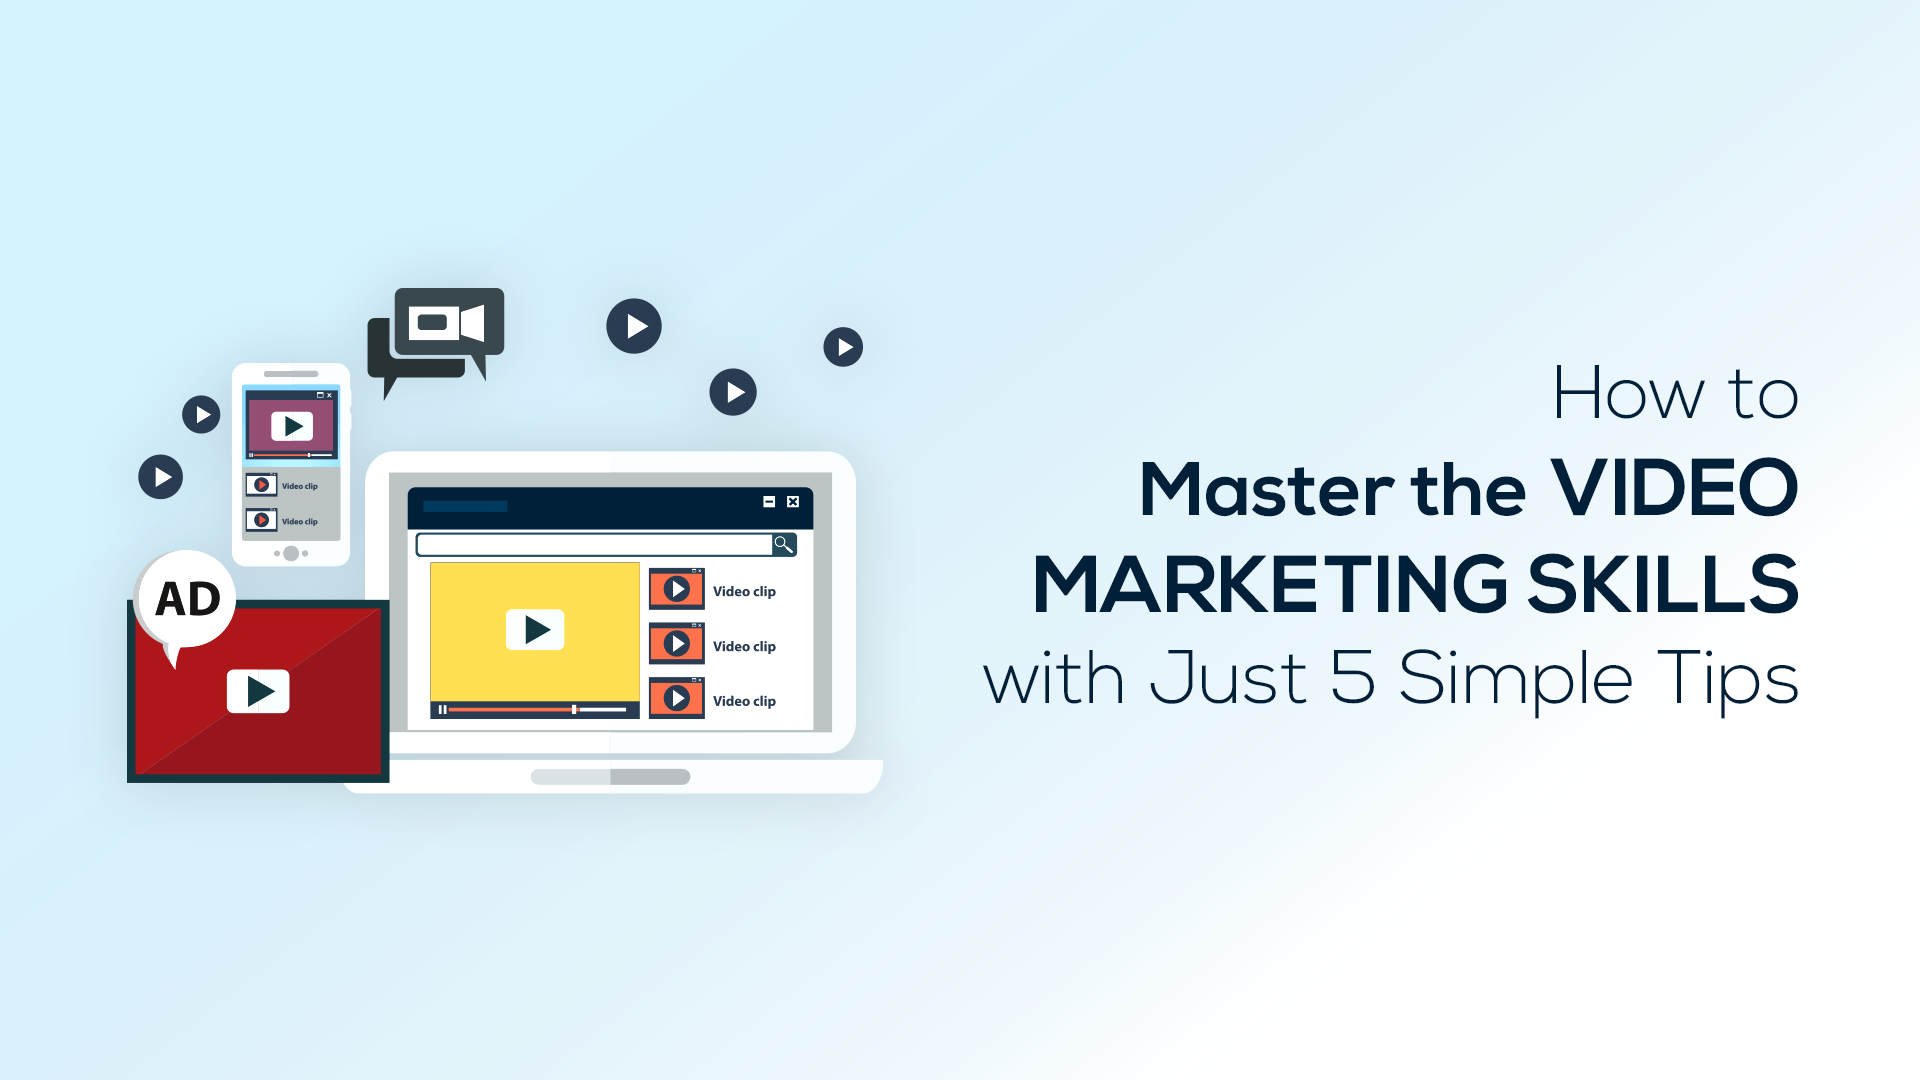 How to Master the Video Marketing Skills with Just 5 Simple Tips